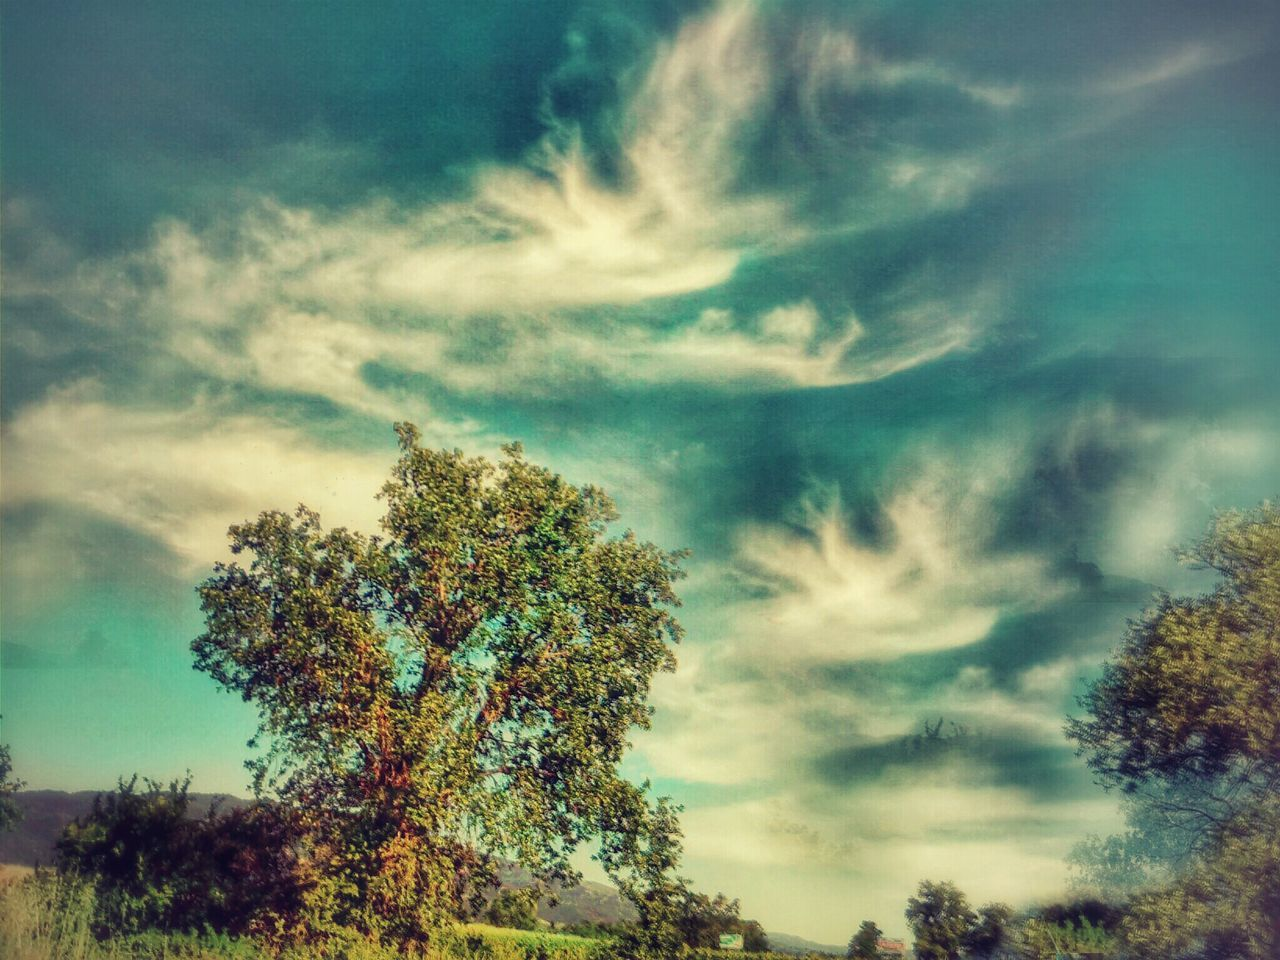 tree, sky, nature, beauty in nature, tranquility, cloud - sky, low angle view, scenics, no people, growth, tranquil scene, day, outdoors, idyllic, landscape